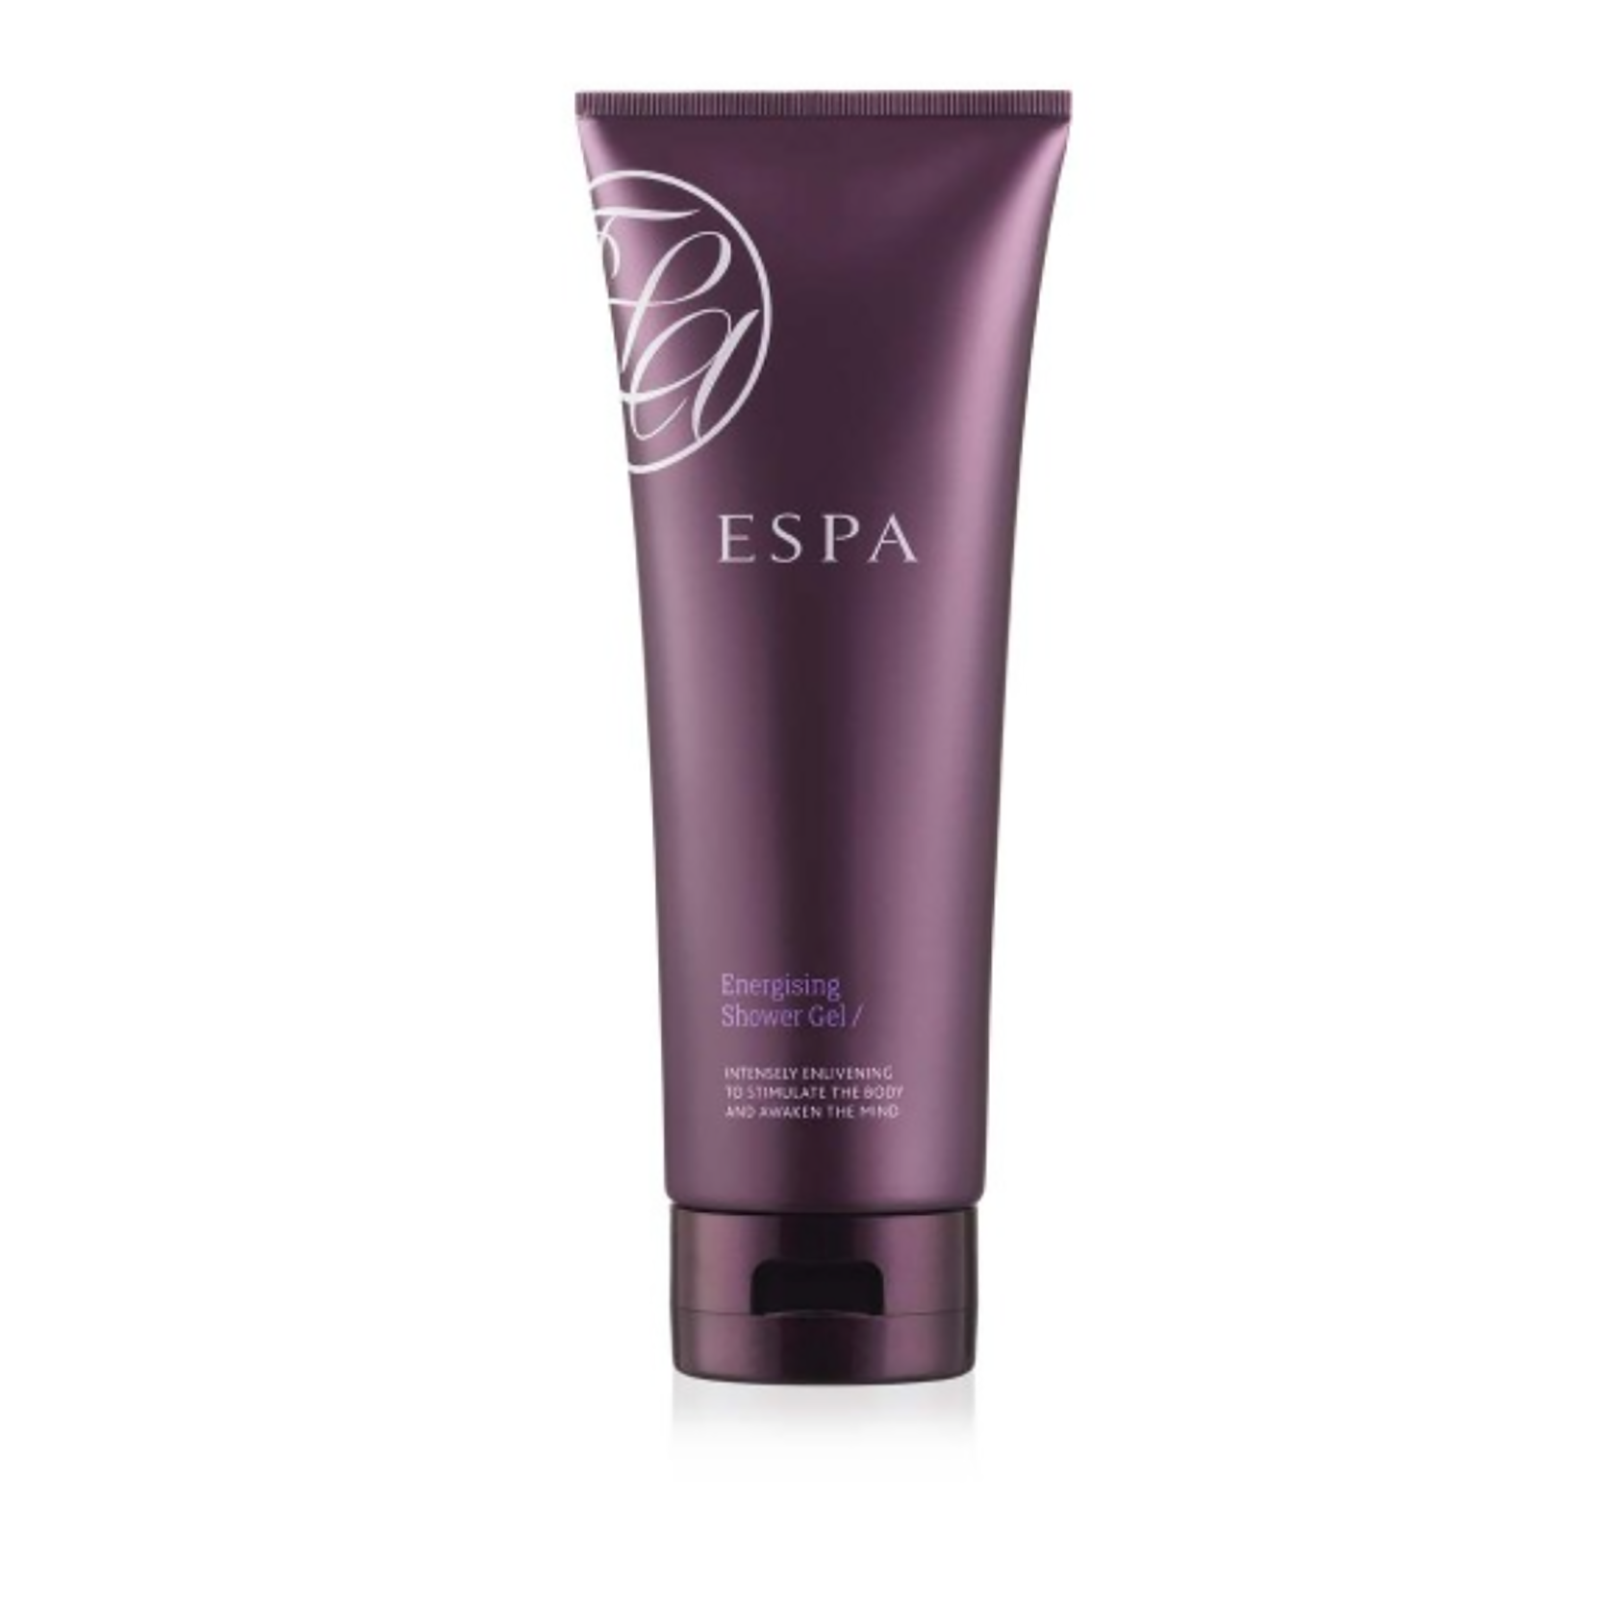 ESPA Energising Shower Gel (200ml)